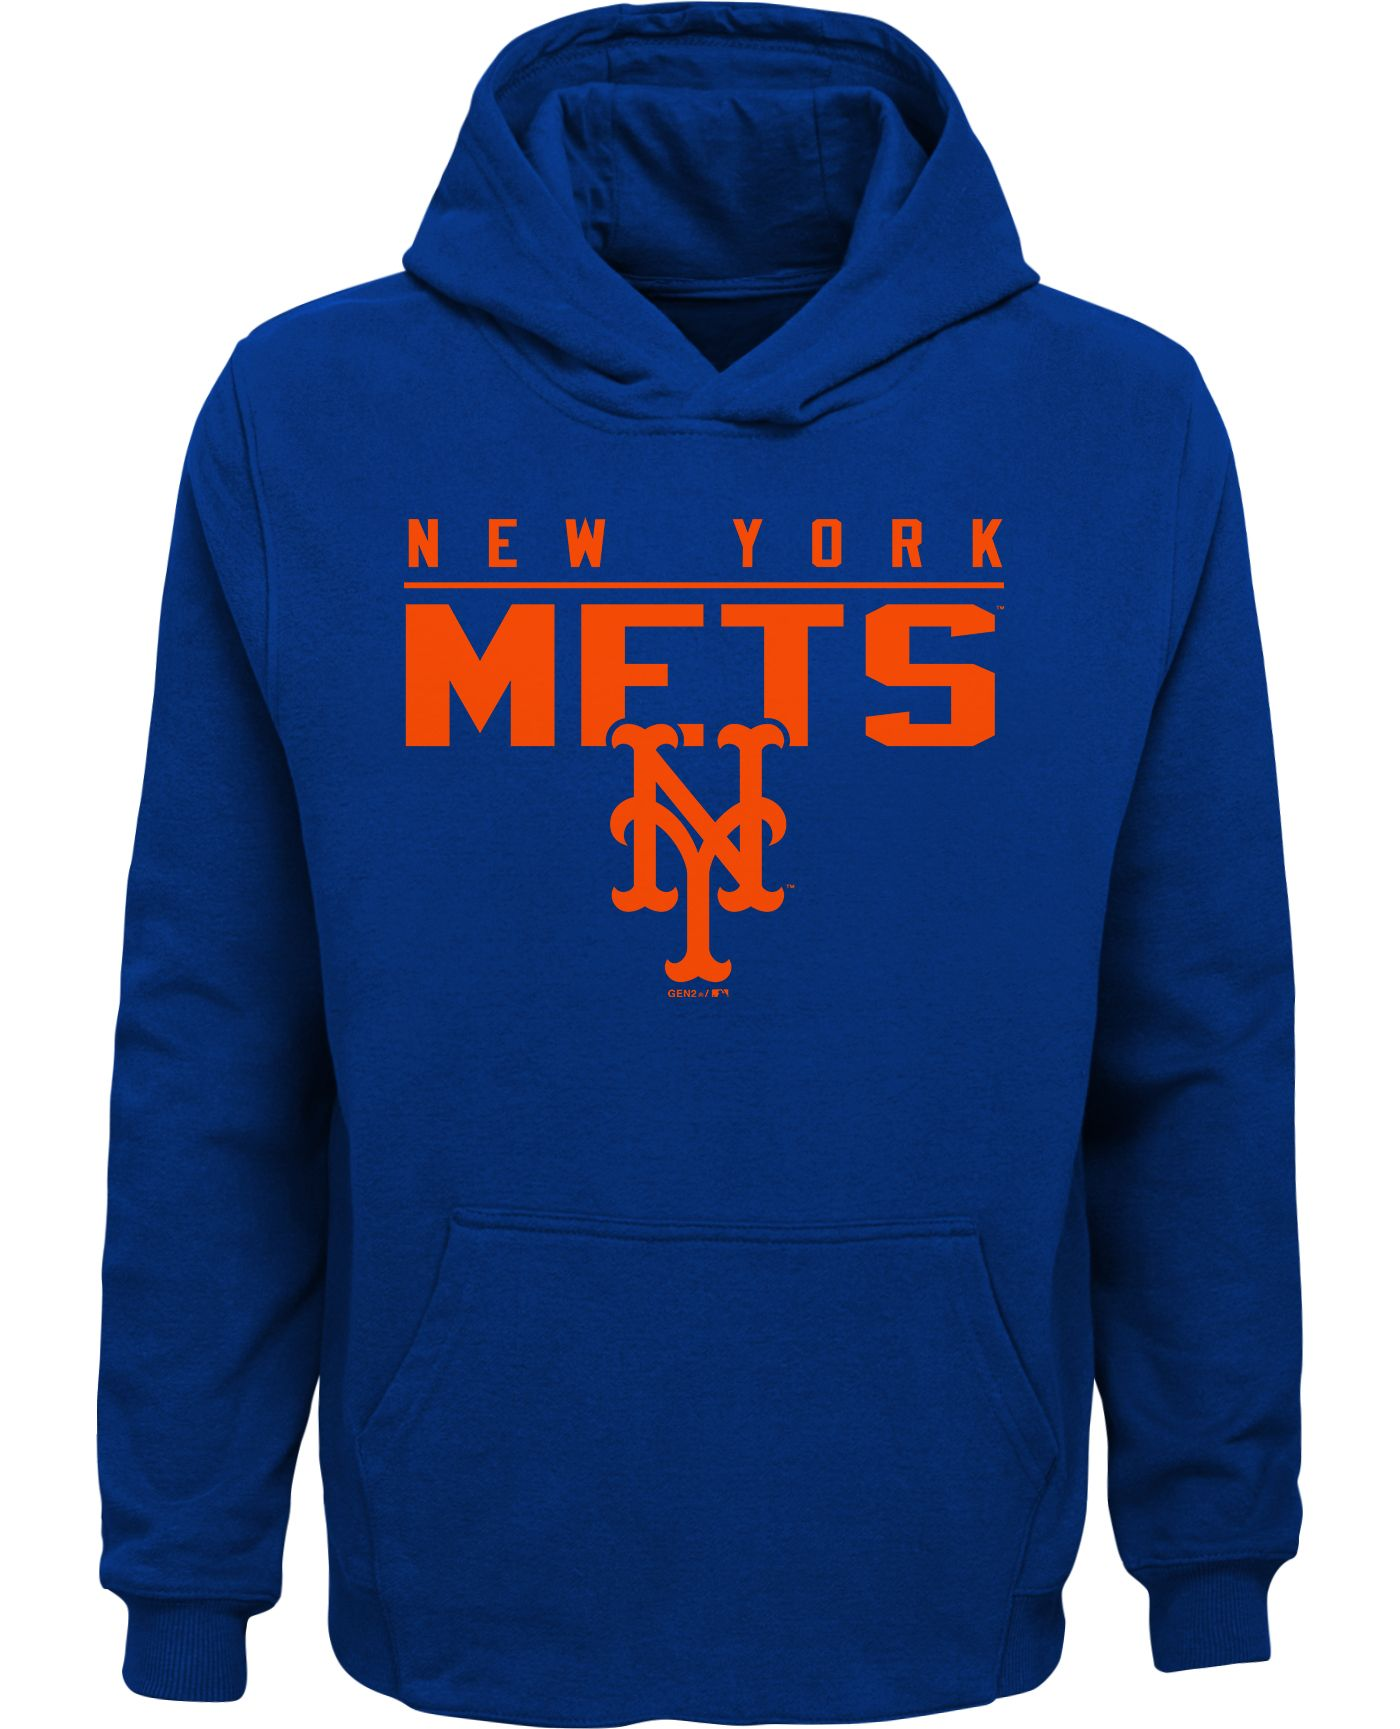 Gen2 Youth New York Mets Pullover Hoodie